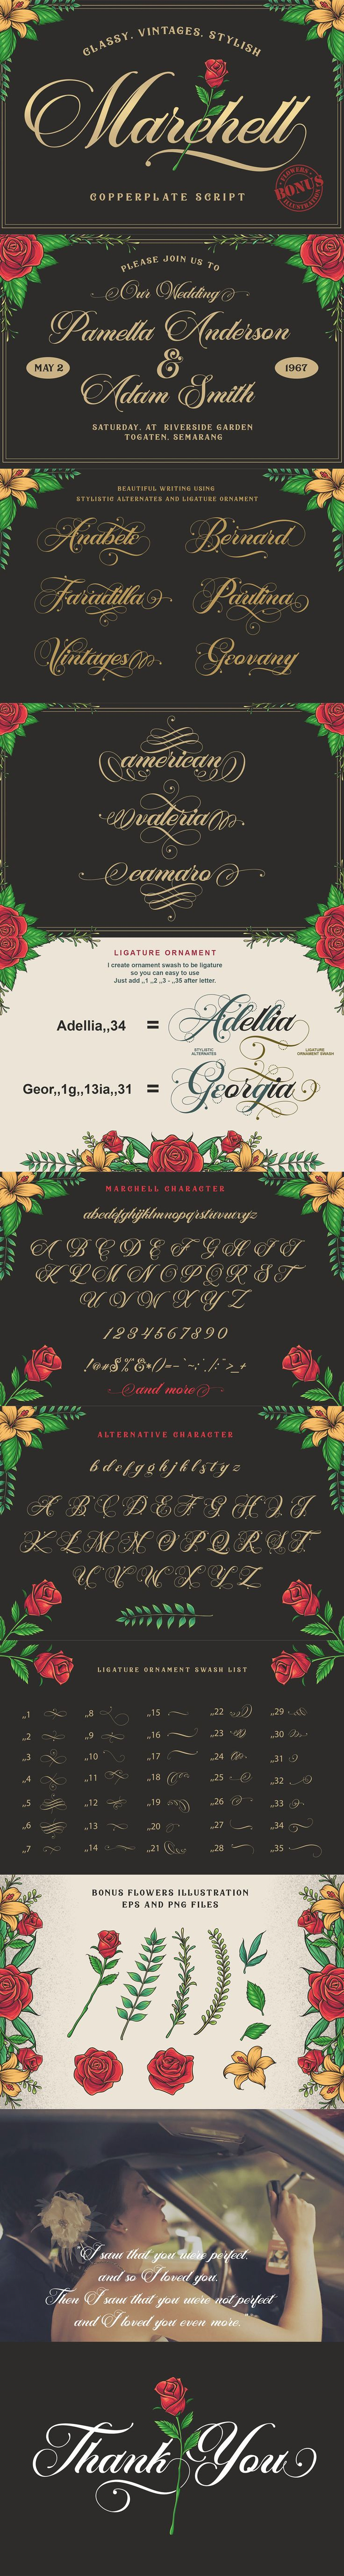 Marchell Script, this is a copperplate style #font that looks #classic, #vintage and #retro but still looks elegant, #luxurious and georgeous. This font is very suitable in use for #wedding invitations, #logotype, badge, etc. ( #typography #font #branding #fashion #lettering #inspiration #creative #webdesign )